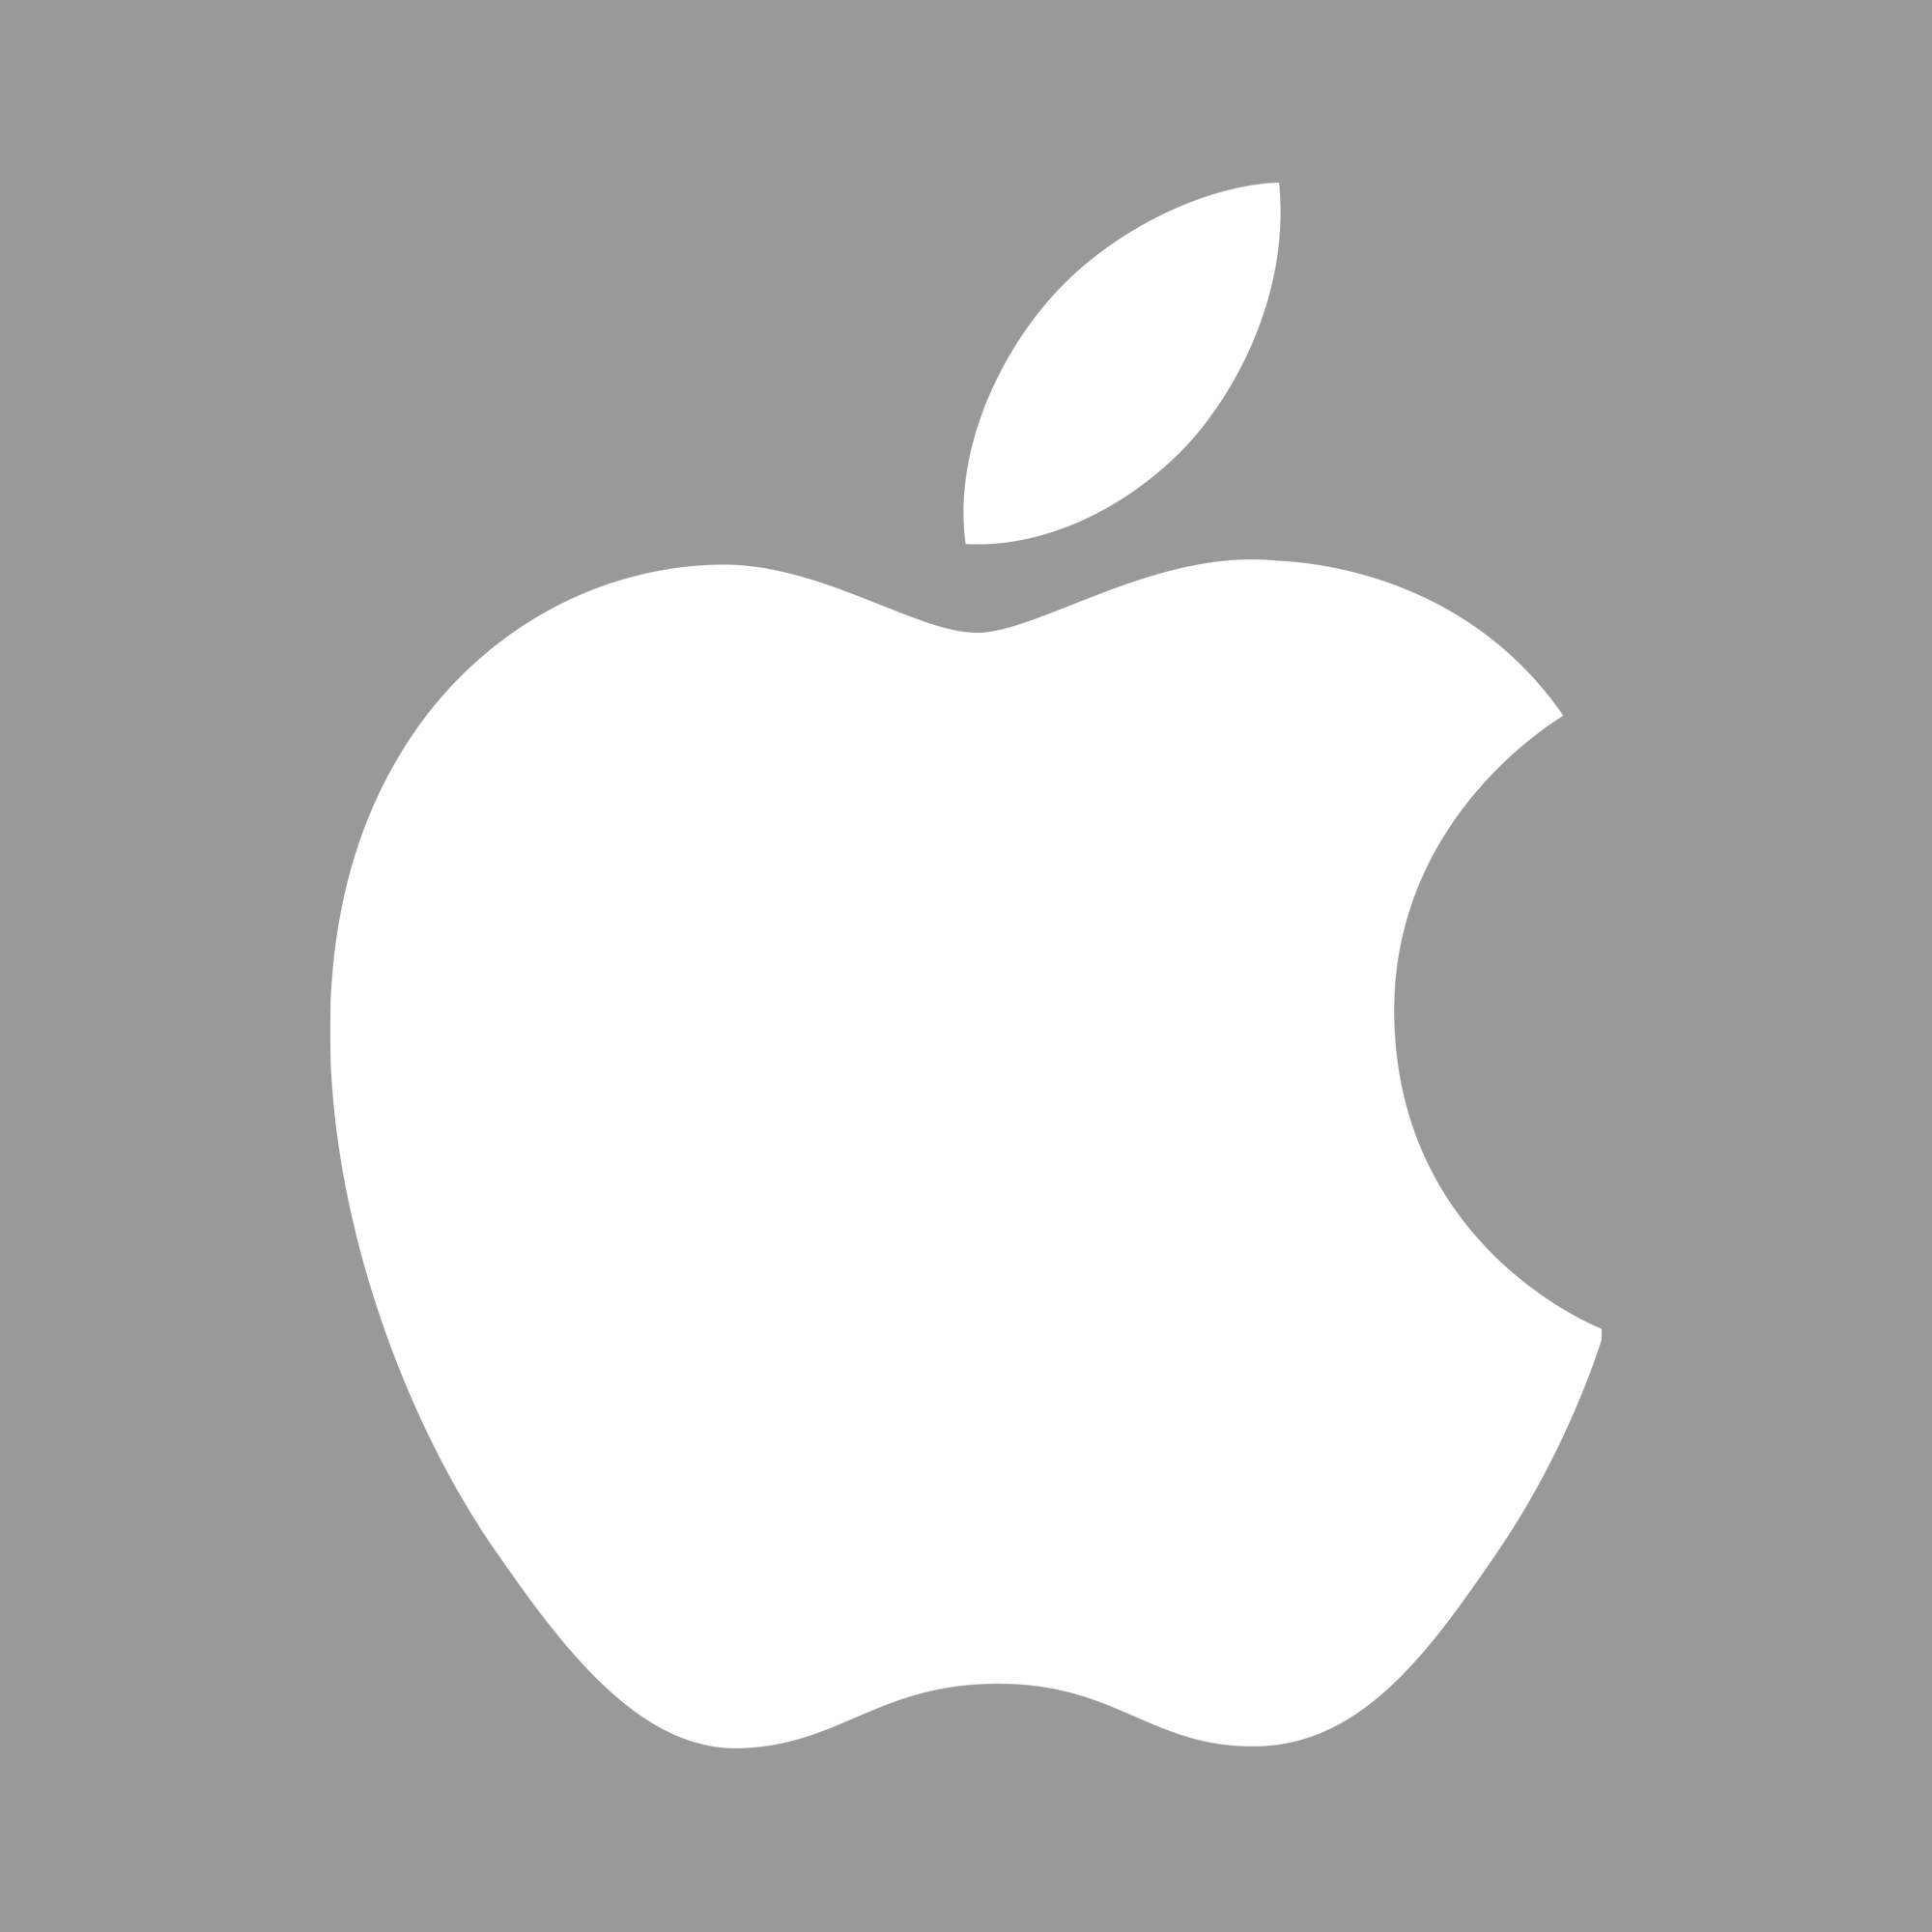 How to brand offerings and leverage the brand – A lesson from Apple